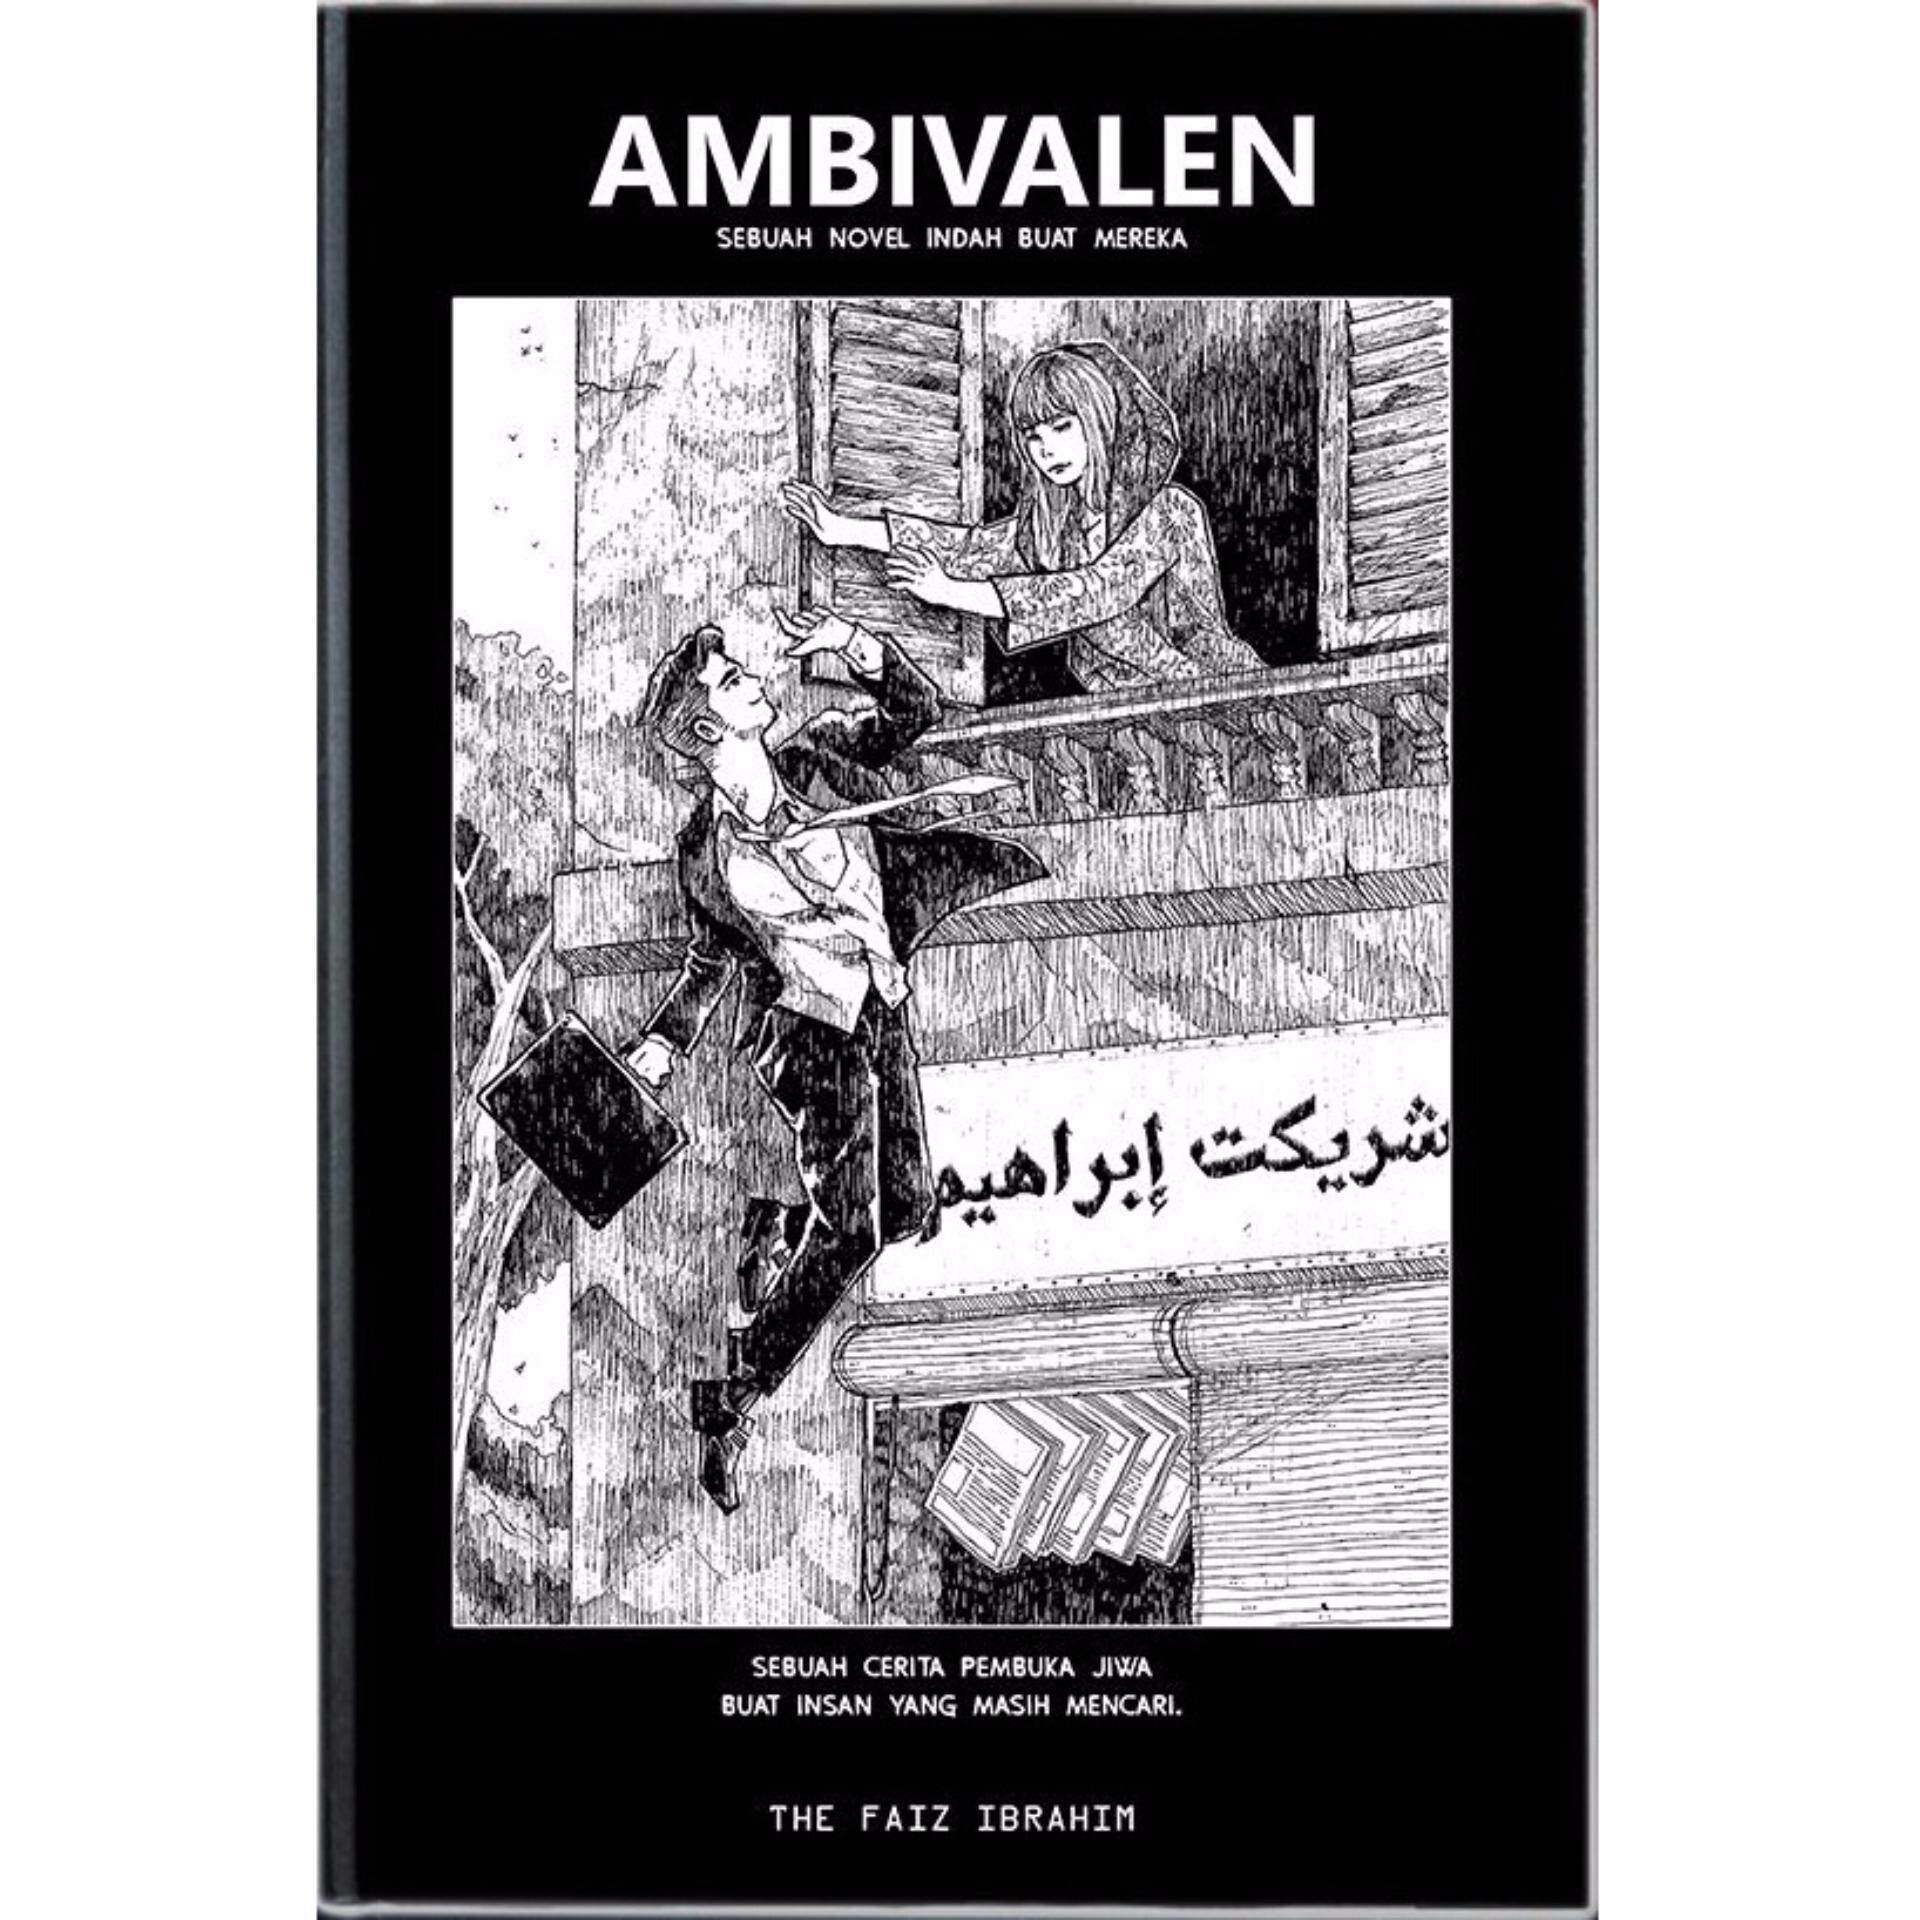 Ambivalen ISBN : 9789671342848  By Author  Faiz Ibrahim